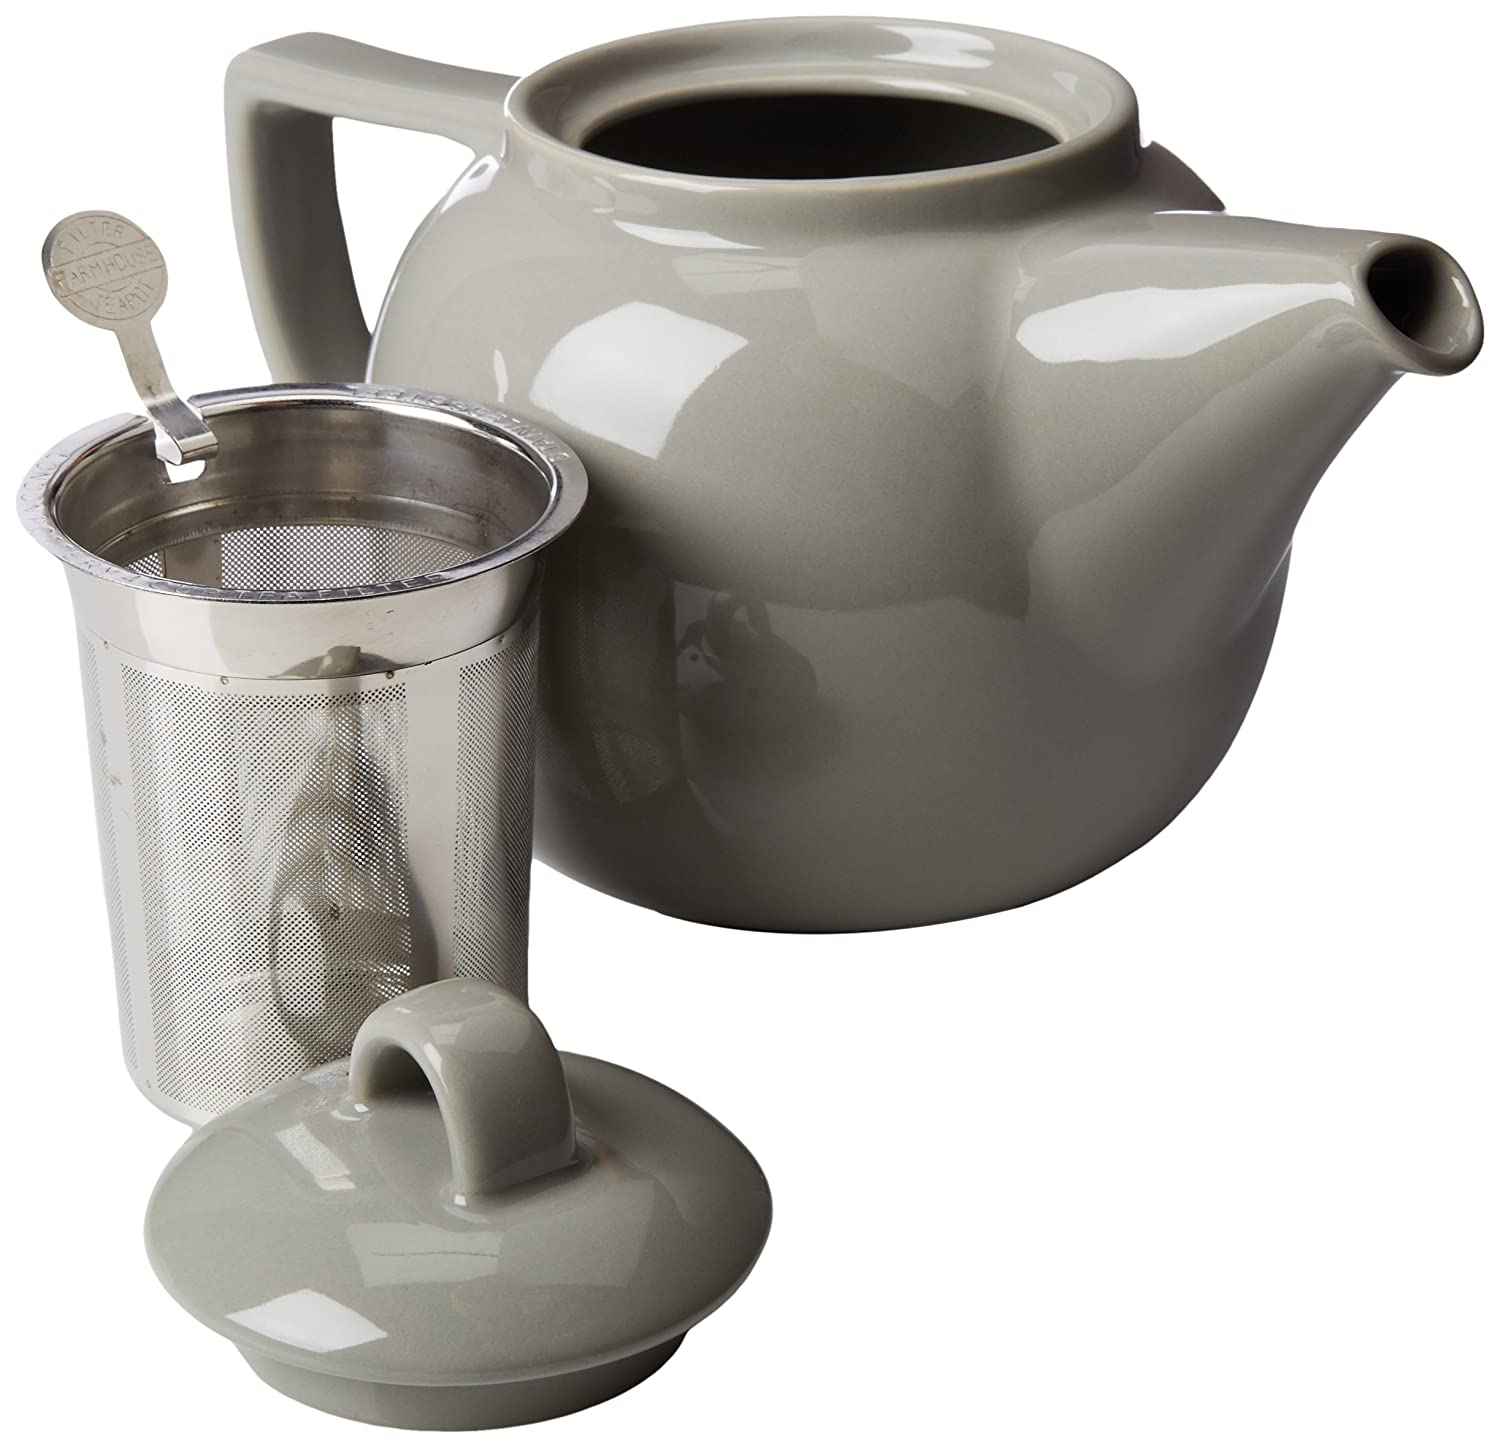 London Pottery Geo Teapot with Stainless Steel Infuser, 4 Cup Capacity, Cobblestone Grey